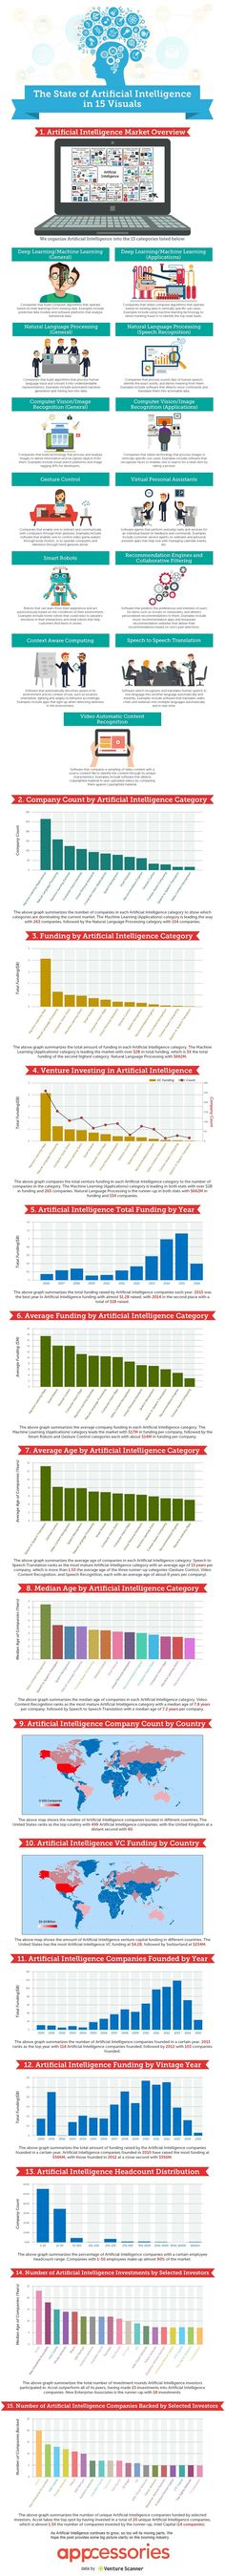 The State of Artificial Intelligence Infographic